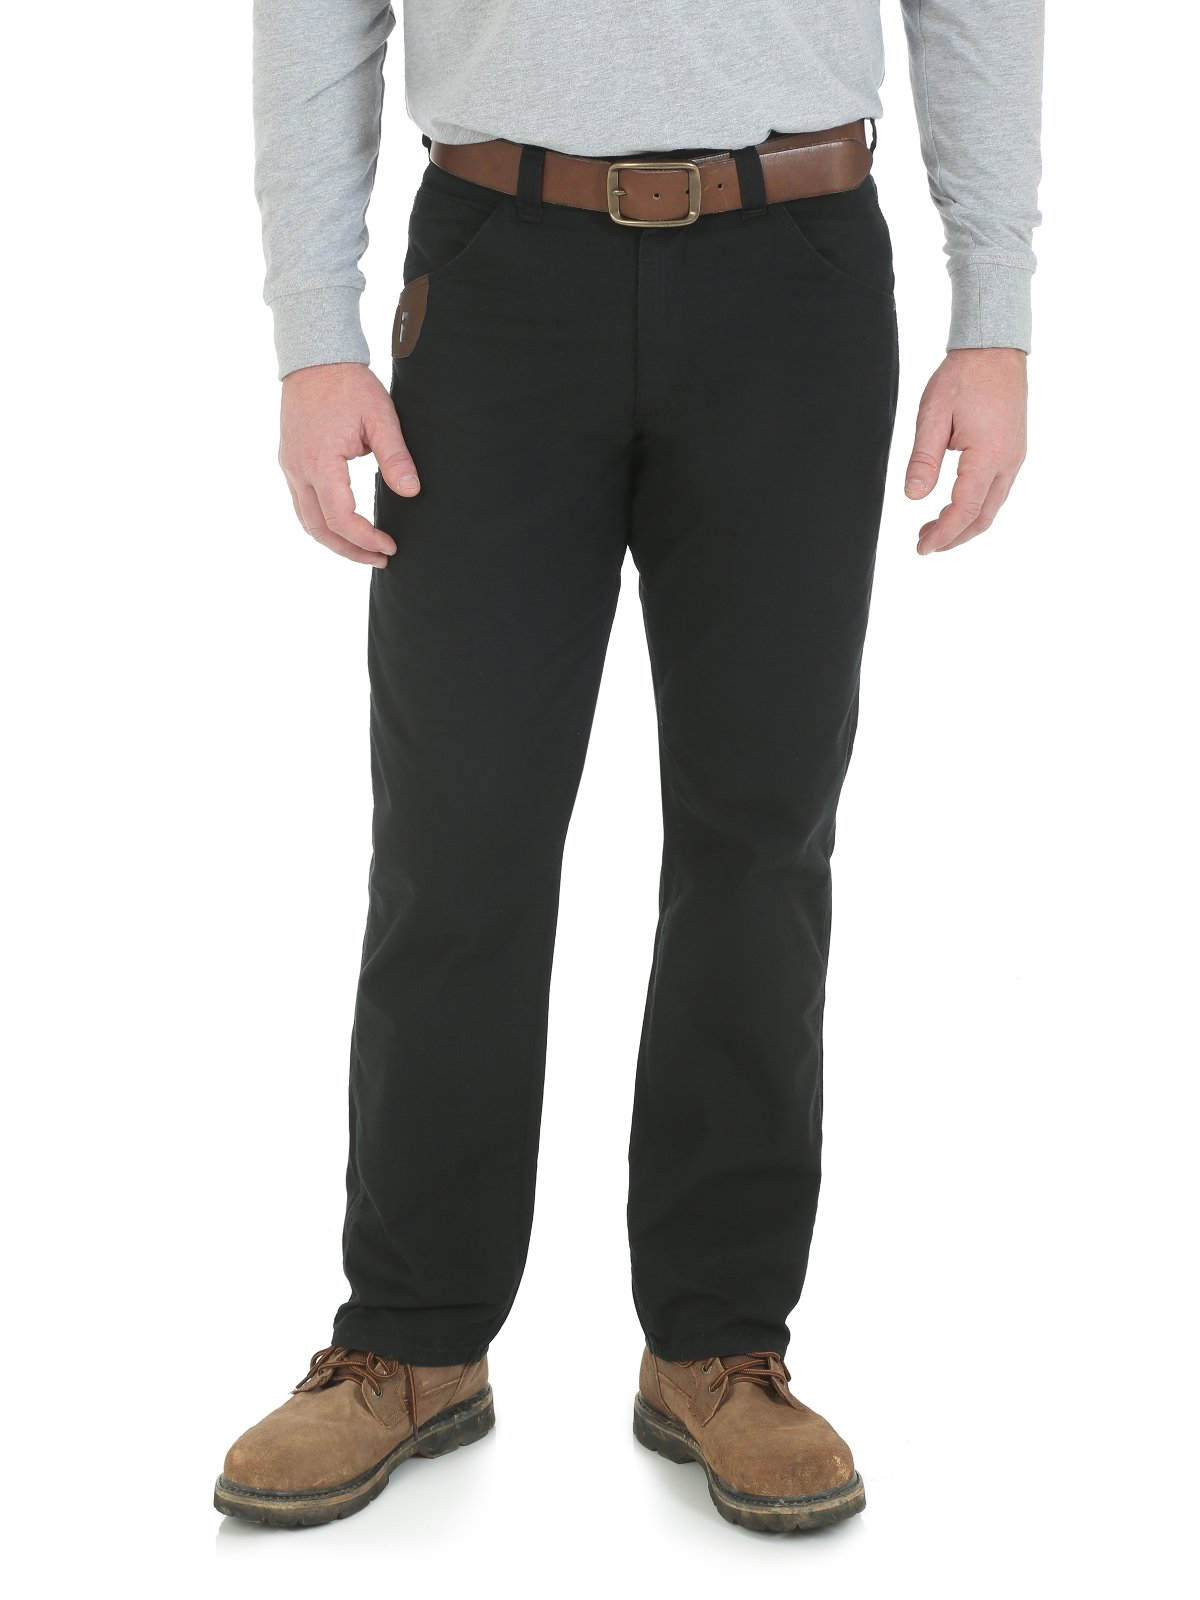 Wrangler Riggs Men's Technician Pant, Black 34x34